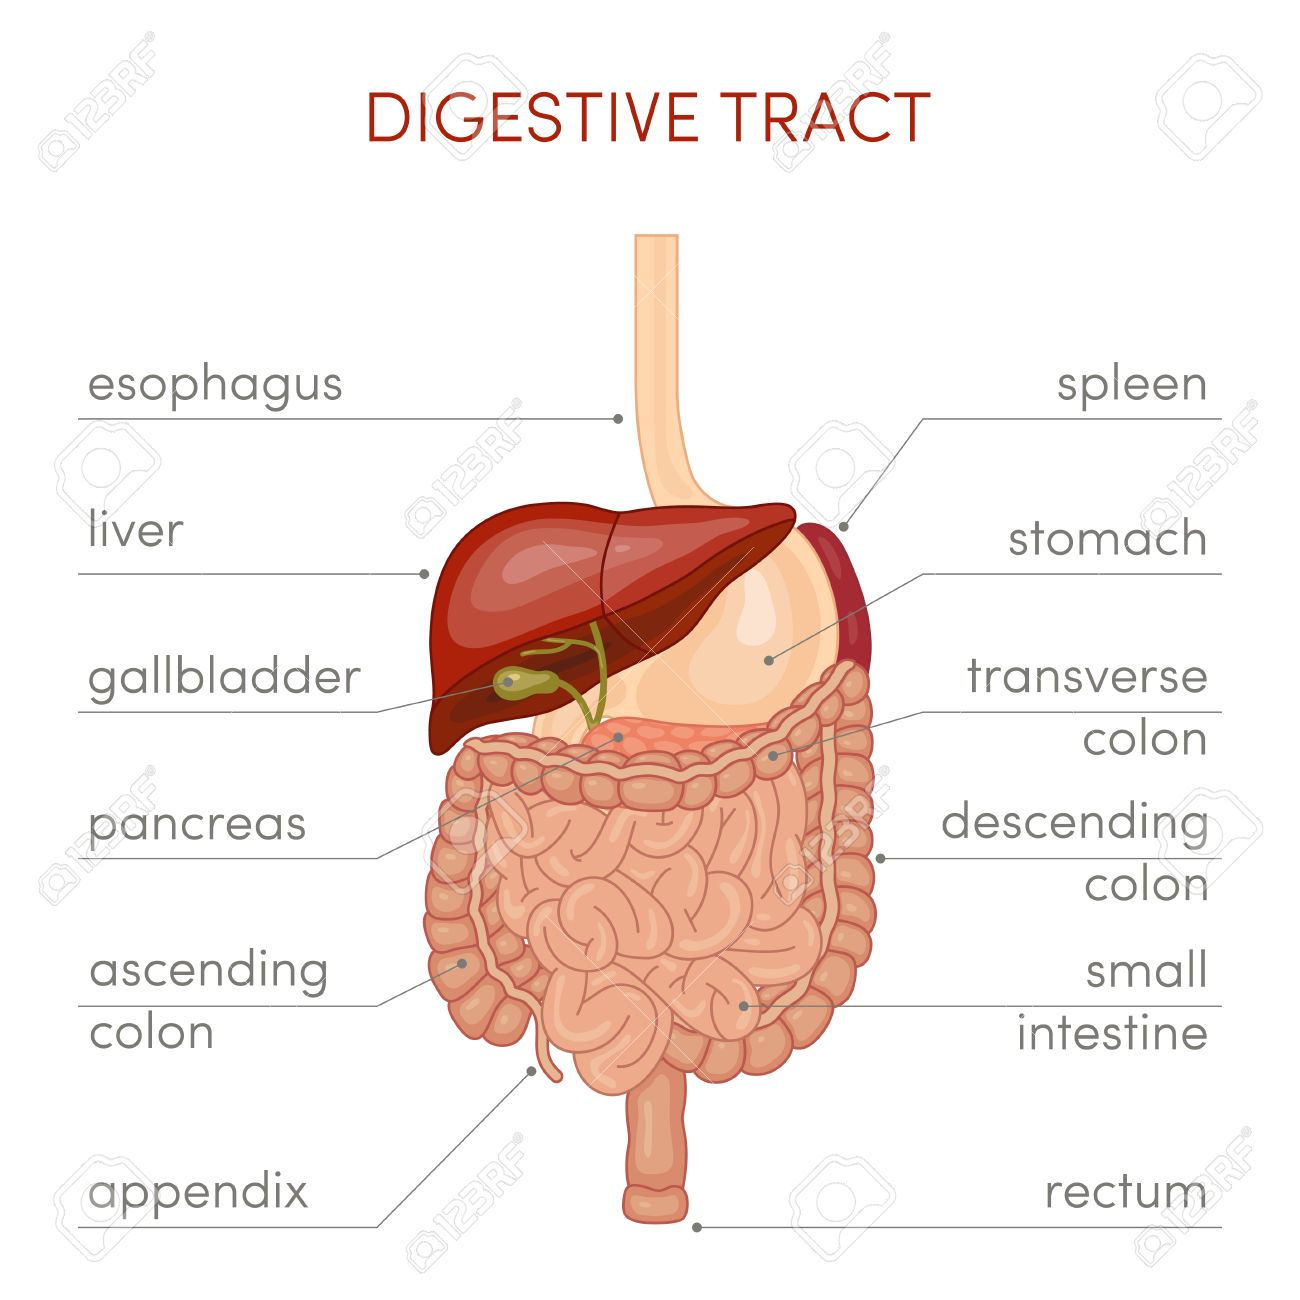 The Digestive Tract Of A Human. Cartoon Illustration For Medical ...